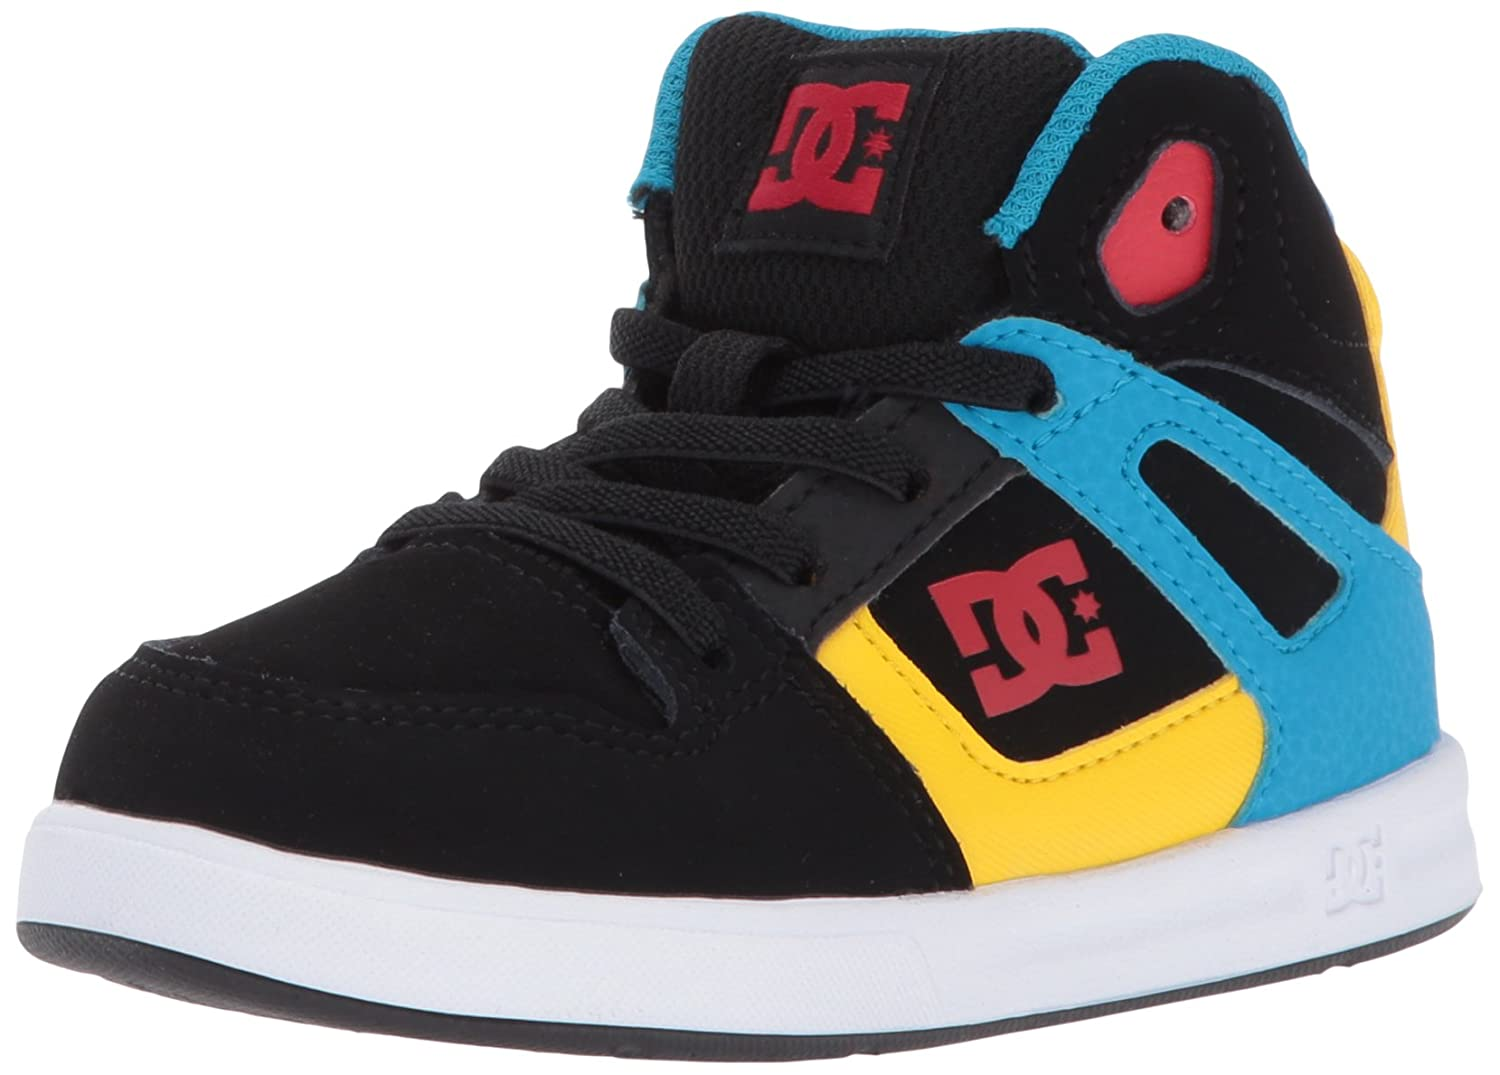 DC Youth Rebound Skate Shoes B01N4E9ZMF 6 M US Toddler|Black/Multi/White